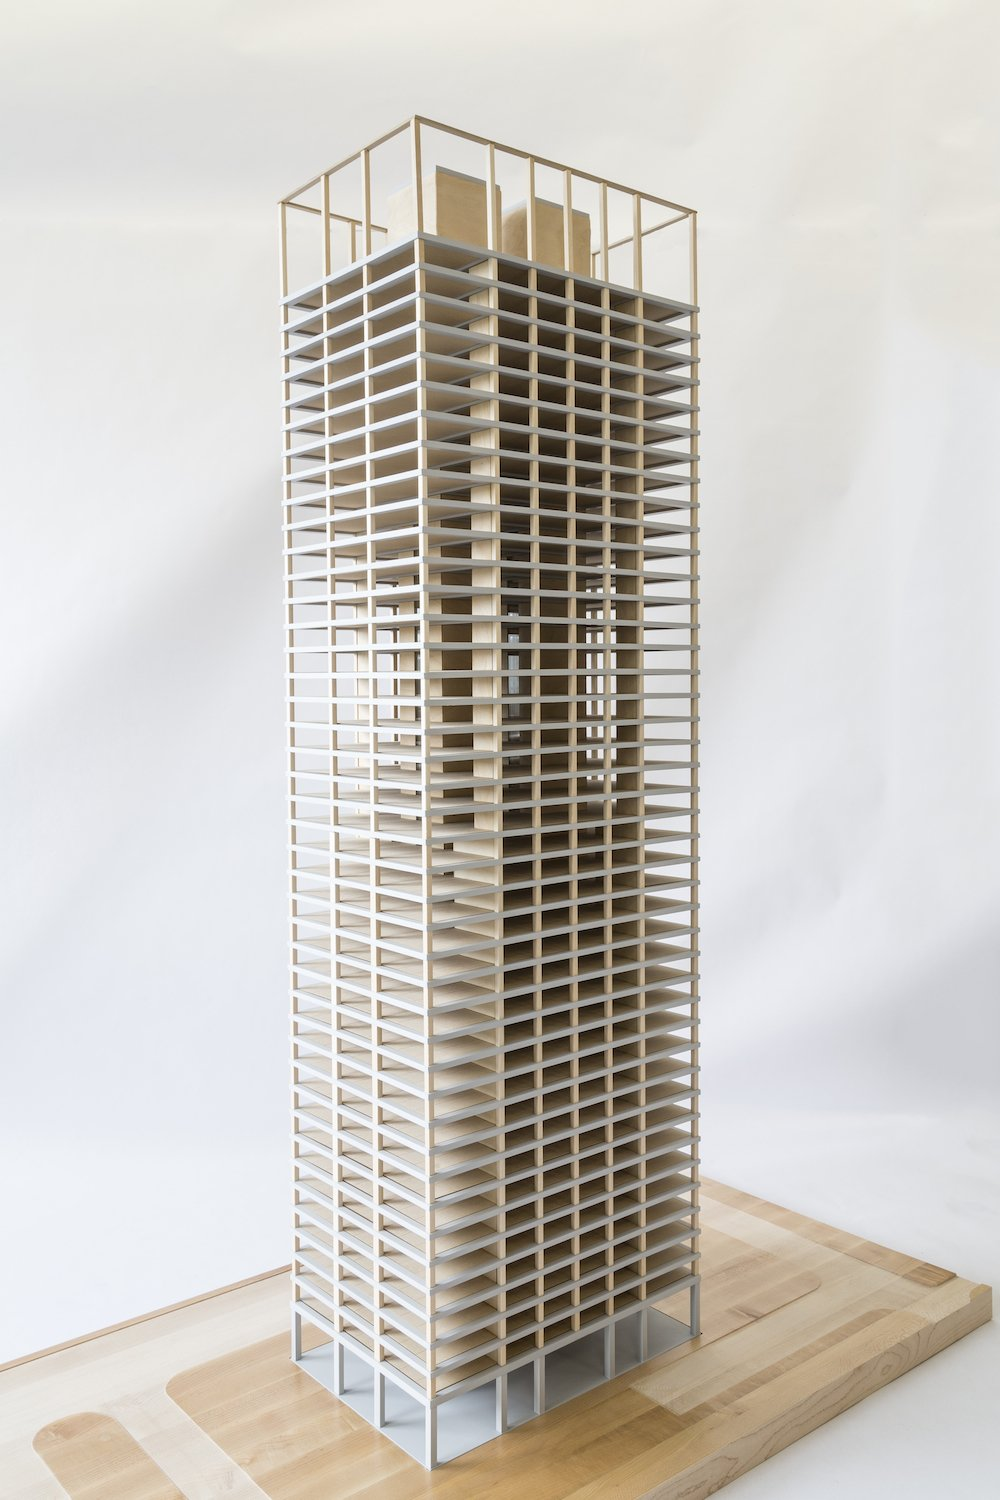 A 40-Story Skyscraper Built of Wood May Not Be Far from Reality